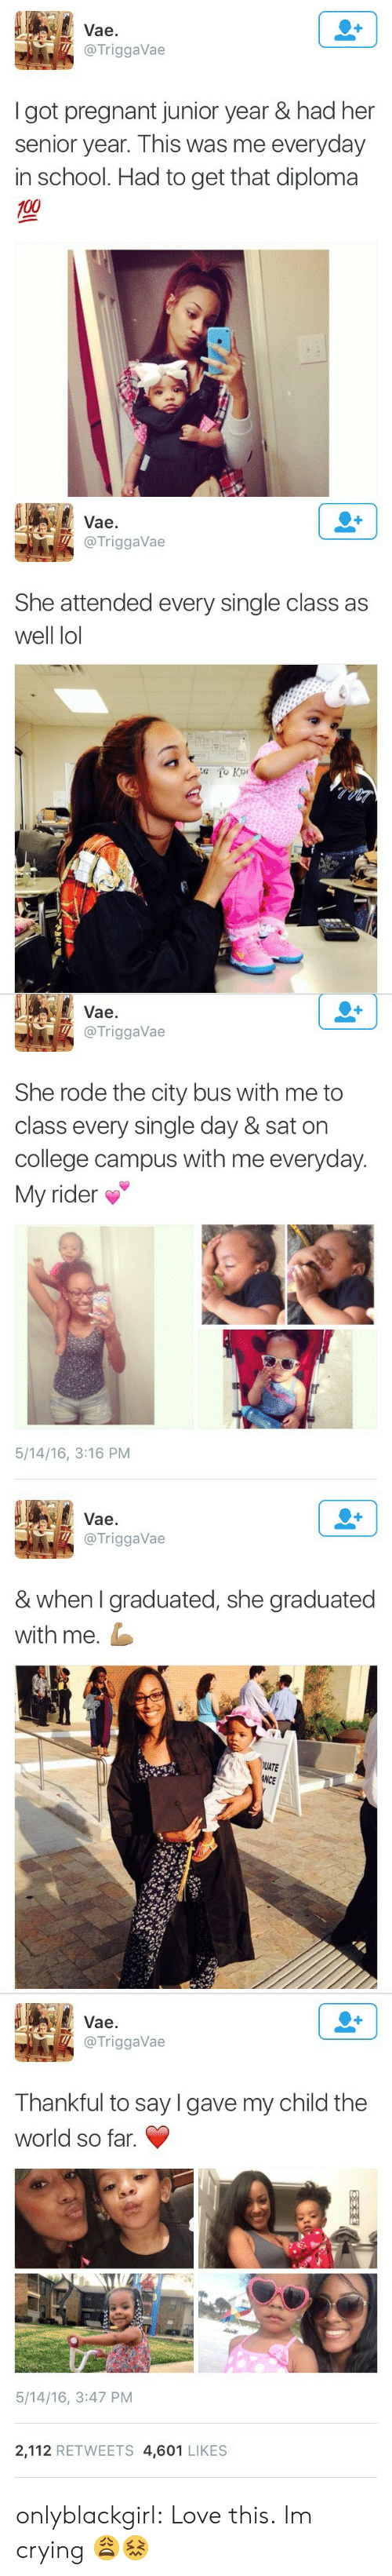 Anaconda, College, and Crying: Vae.  @TriggaVae  I got pregnant junior year & had her  senior year. This was me everyday  in school. Had to get that diploma  100   Vae.  @TriggaVae  She attended every single class as  well lol   Vae.  @TriggaVae  She rode the city bus with me to  class every single day & sat on  college campus with me everyday.  My rider  5/14/16, 3:16 PM   Vae.  @TriggaVae  & when I graduated, she graduated  with me.  UATE  NCE   Vae.  @TriggaVae  Thankful to say lgave my child the  world so far.  5/14/16, 3:47 PM  2,112 RETWEETS 4,601 LIKES onlyblackgirl:  Love this.   Im crying 😩😖